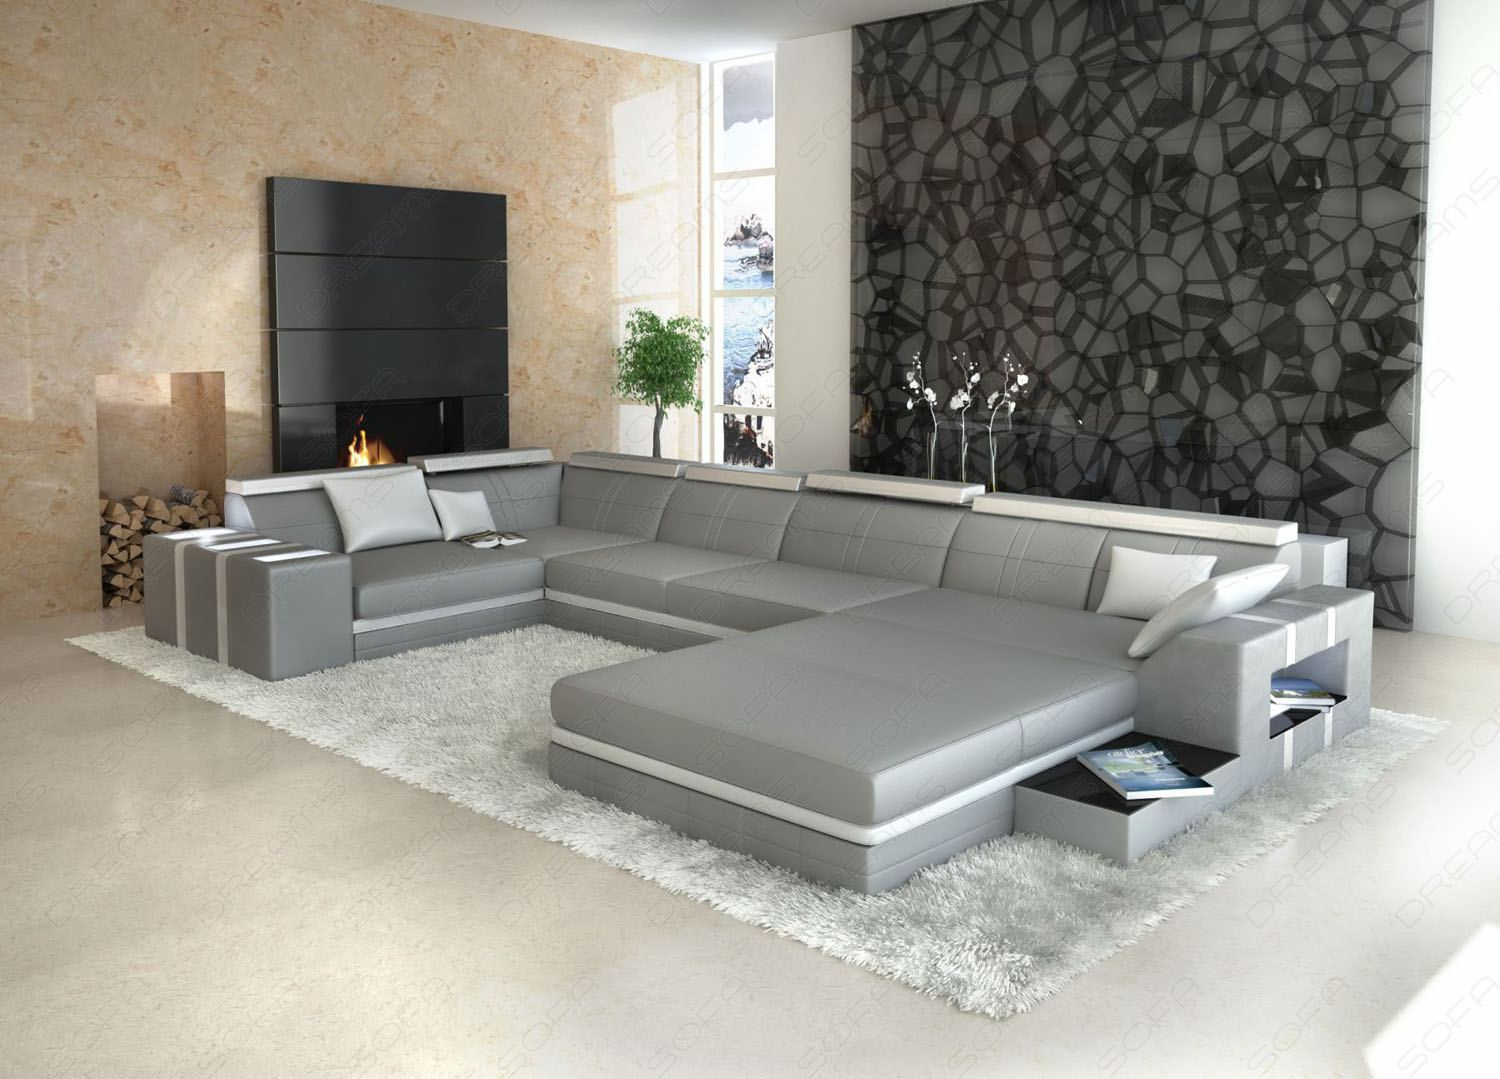 ledersofa asti u form grau weiss wohnlandschaft beleuchtung ebay. Black Bedroom Furniture Sets. Home Design Ideas